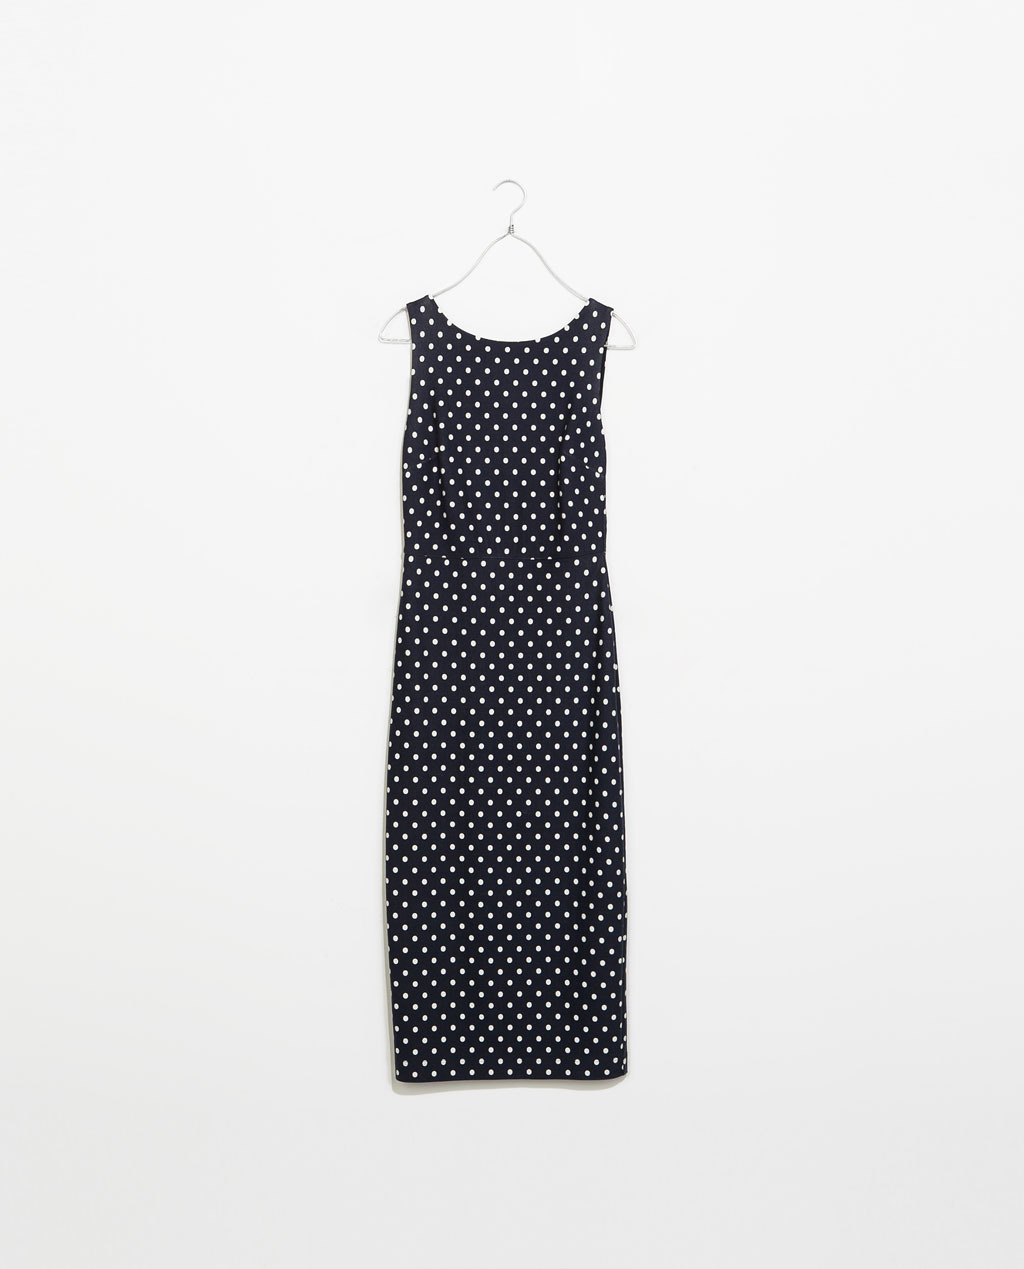 Dress With Low Cut Back - neckline: round neck; fit: tight; sleeve style: sleeveless; style: bodycon; back detail: back revealing; pattern: polka dot; secondary colour: ivory/cream; predominant colour: black; occasions: casual, evening, creative work; length: on the knee; fibres: viscose/rayon - 100%; sleeve length: sleeveless; texture group: jersey - clingy; pattern type: fabric; pattern size: standard; season: s/s 2014